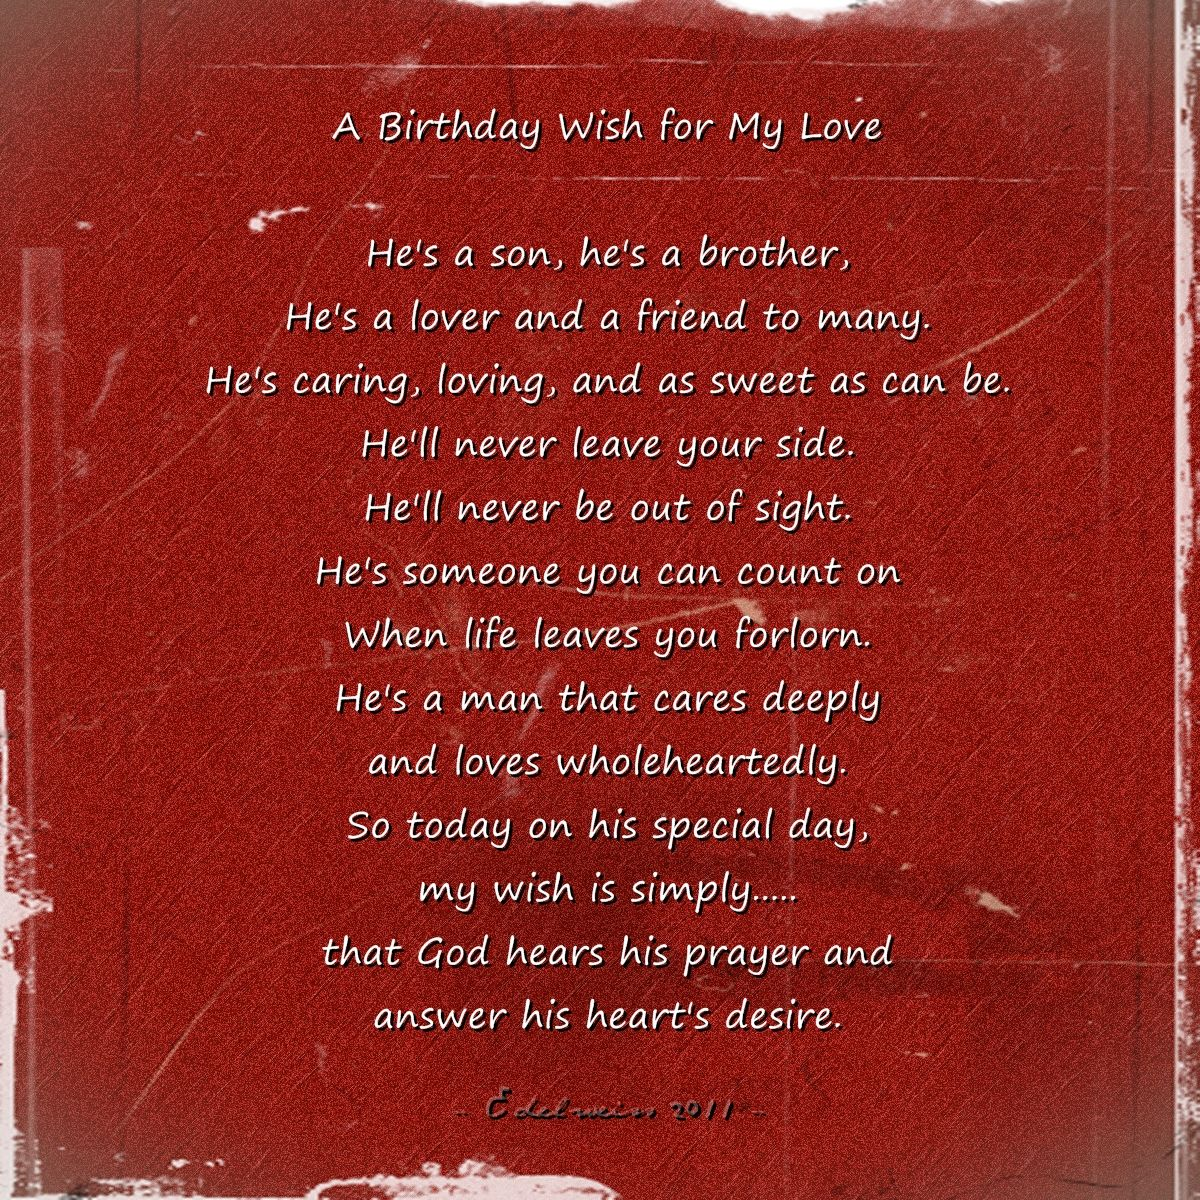 Happy Birthday Poems For Him Cute Poetry For Boyfriend Or: A Birthday Wish For My Love Pictures, Photos, And Images